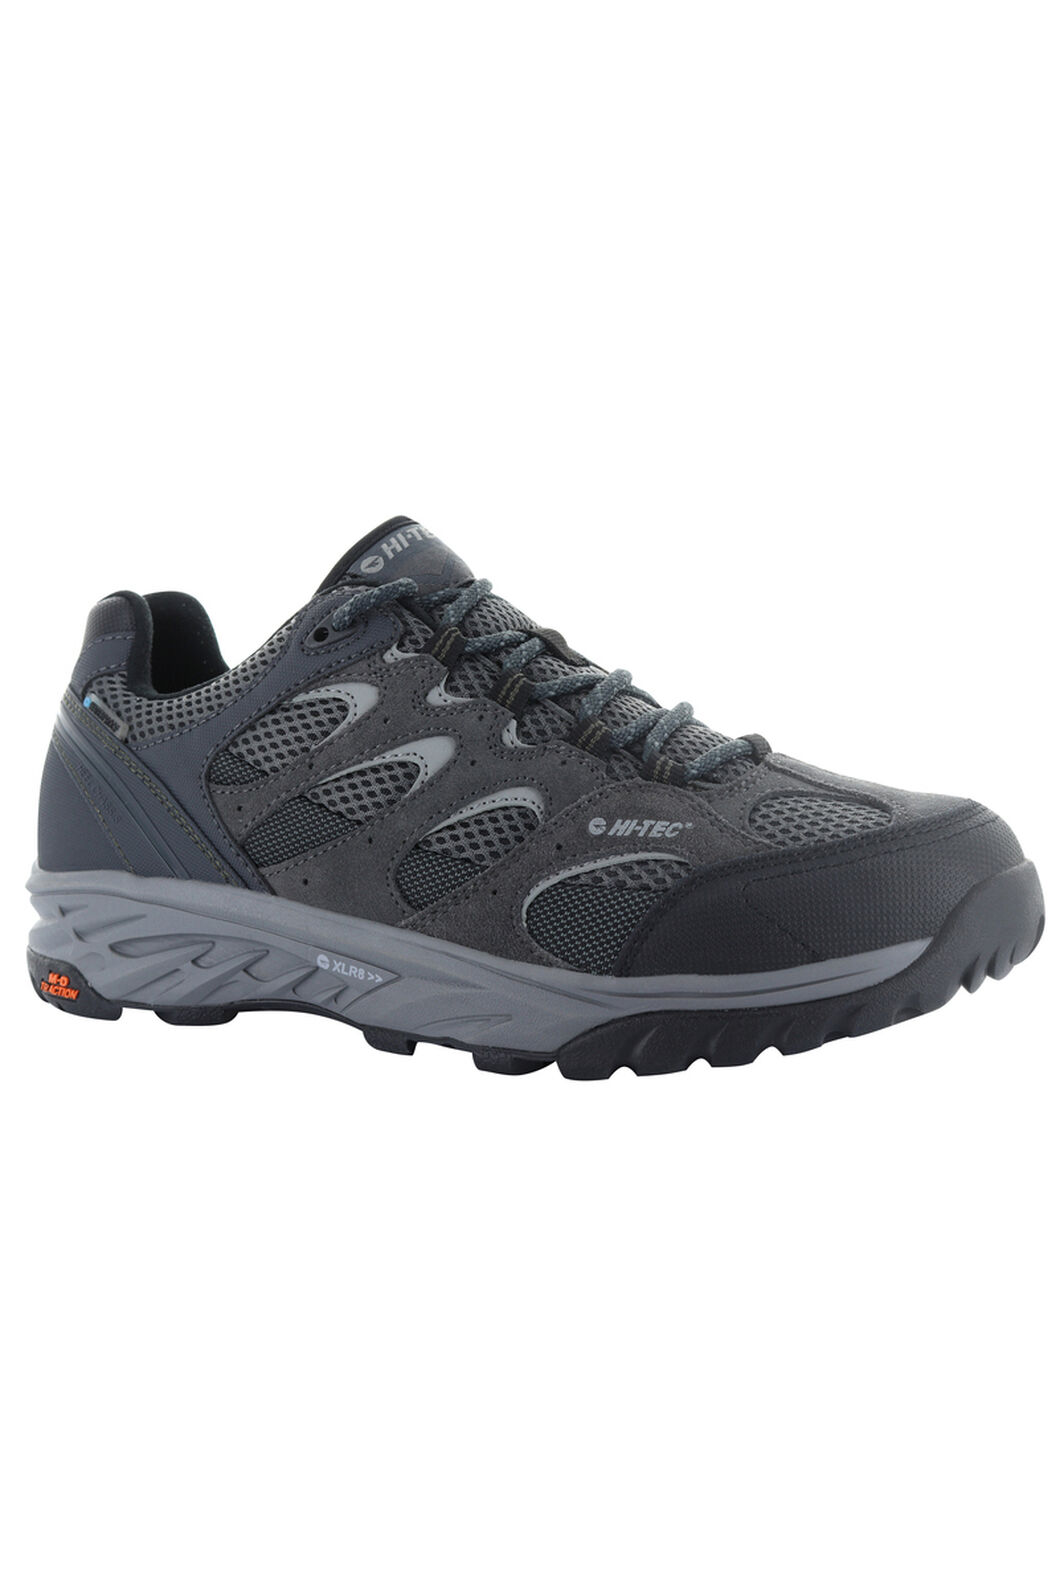 Hi-Tec Wild-Fire Low I WP - Men's, Charcoal/Black/Olive Night, hi-res